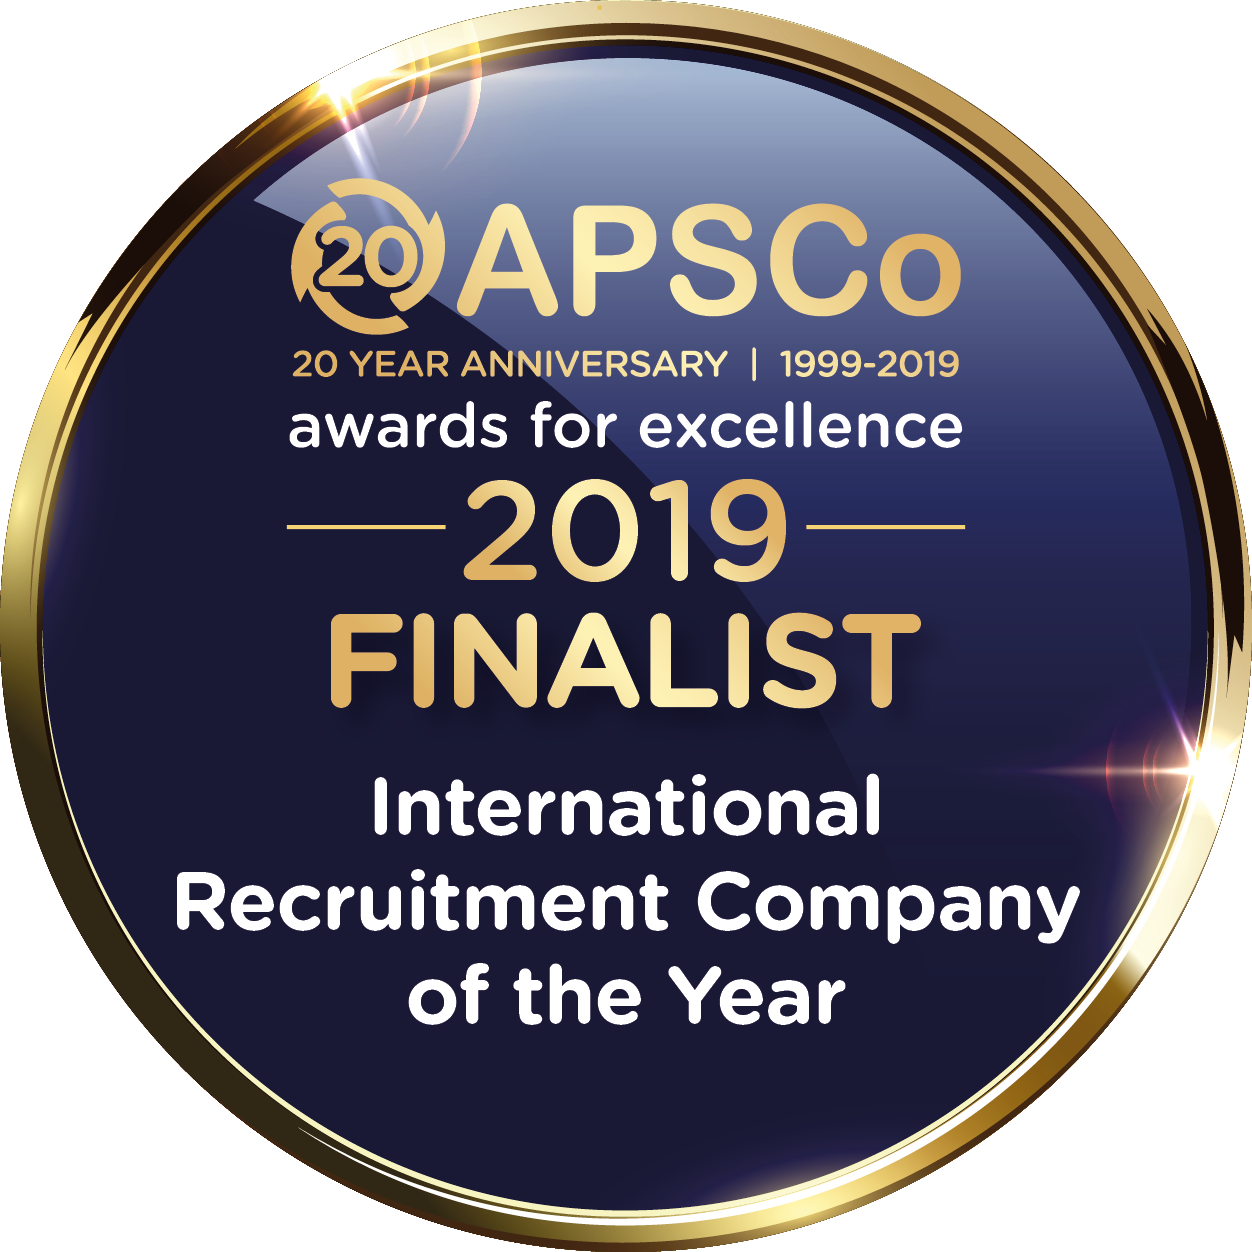 APSCO award 2019